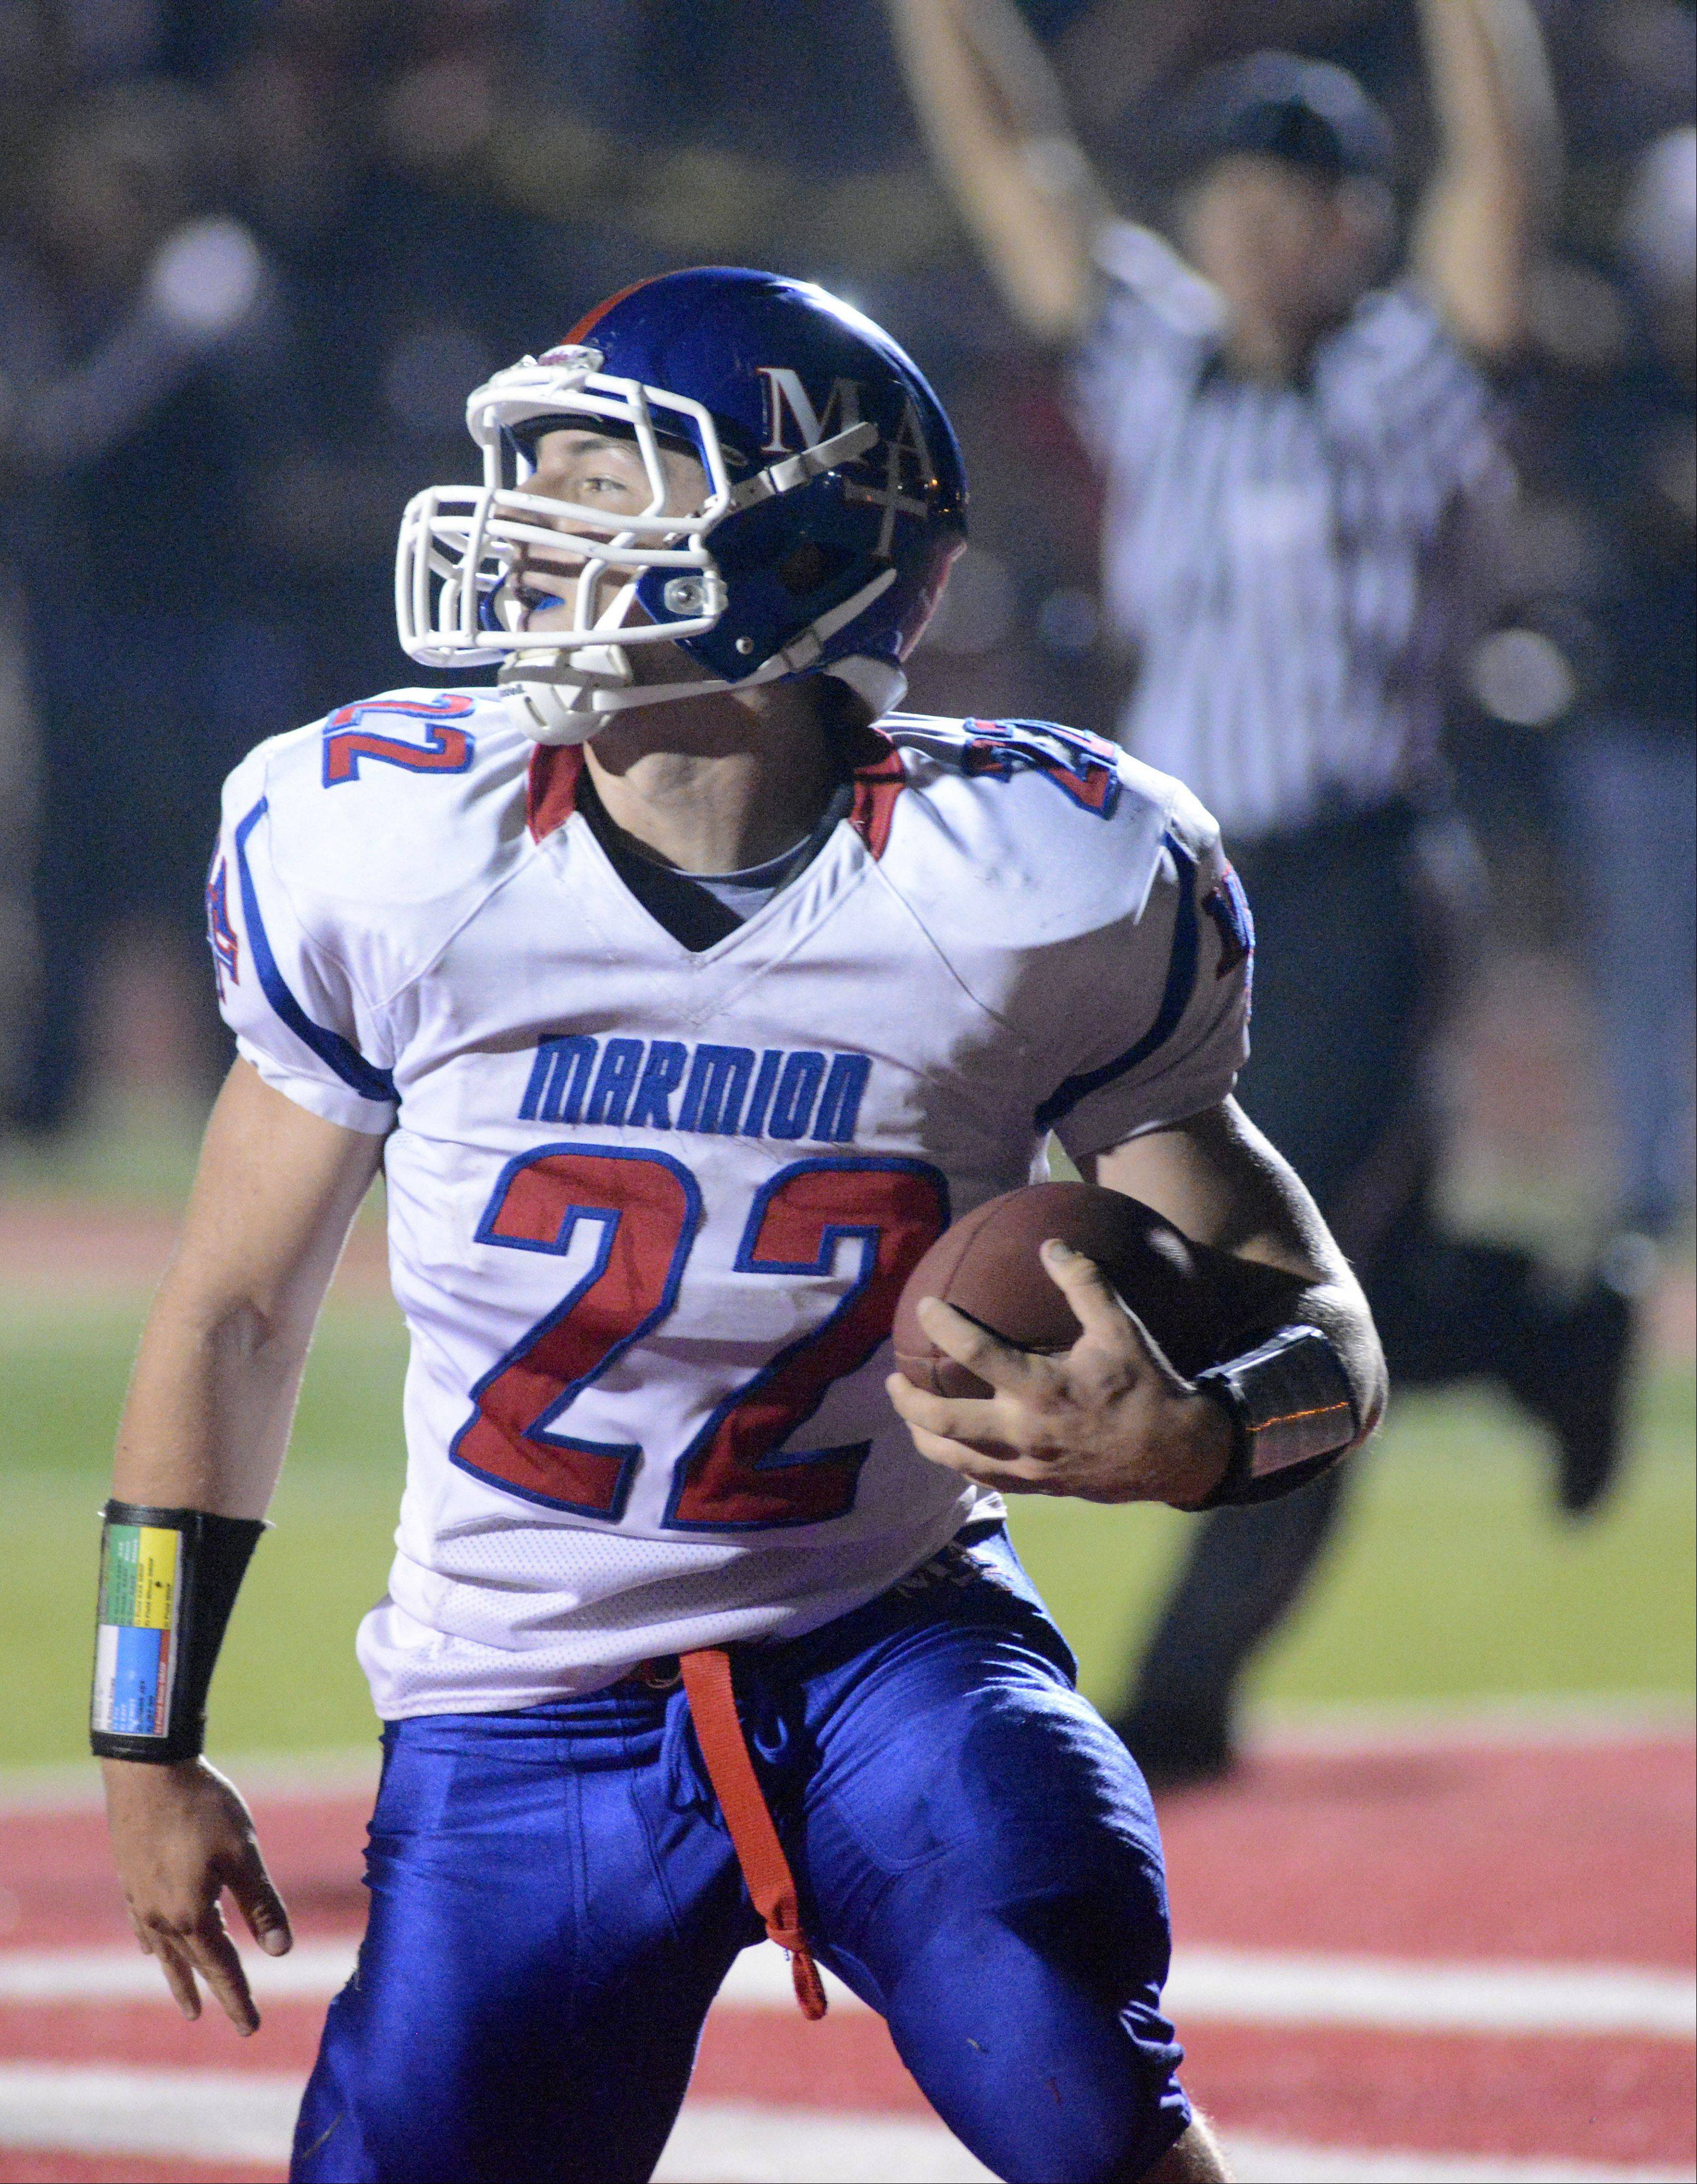 Marmion Academy's Jordan Glasgow scores a touchdown in the first quarter on Friday, October 4.